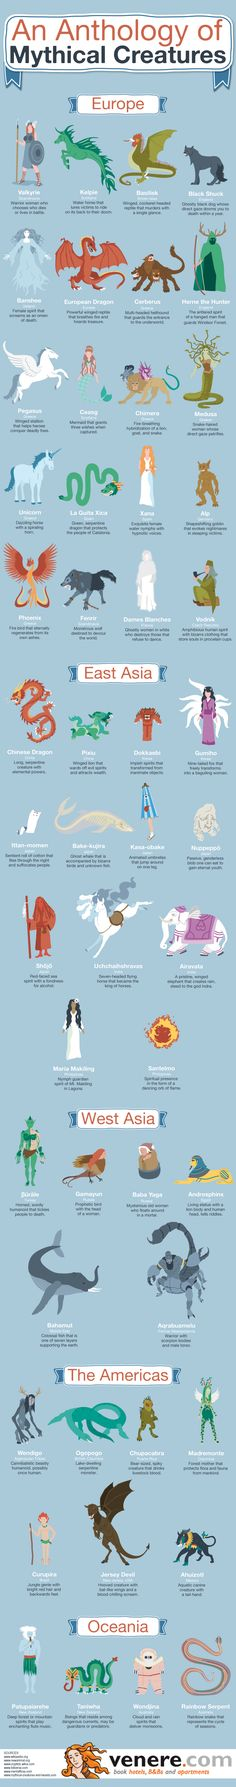 Here's a Handy Little Guide to the World's Mythical Creatures